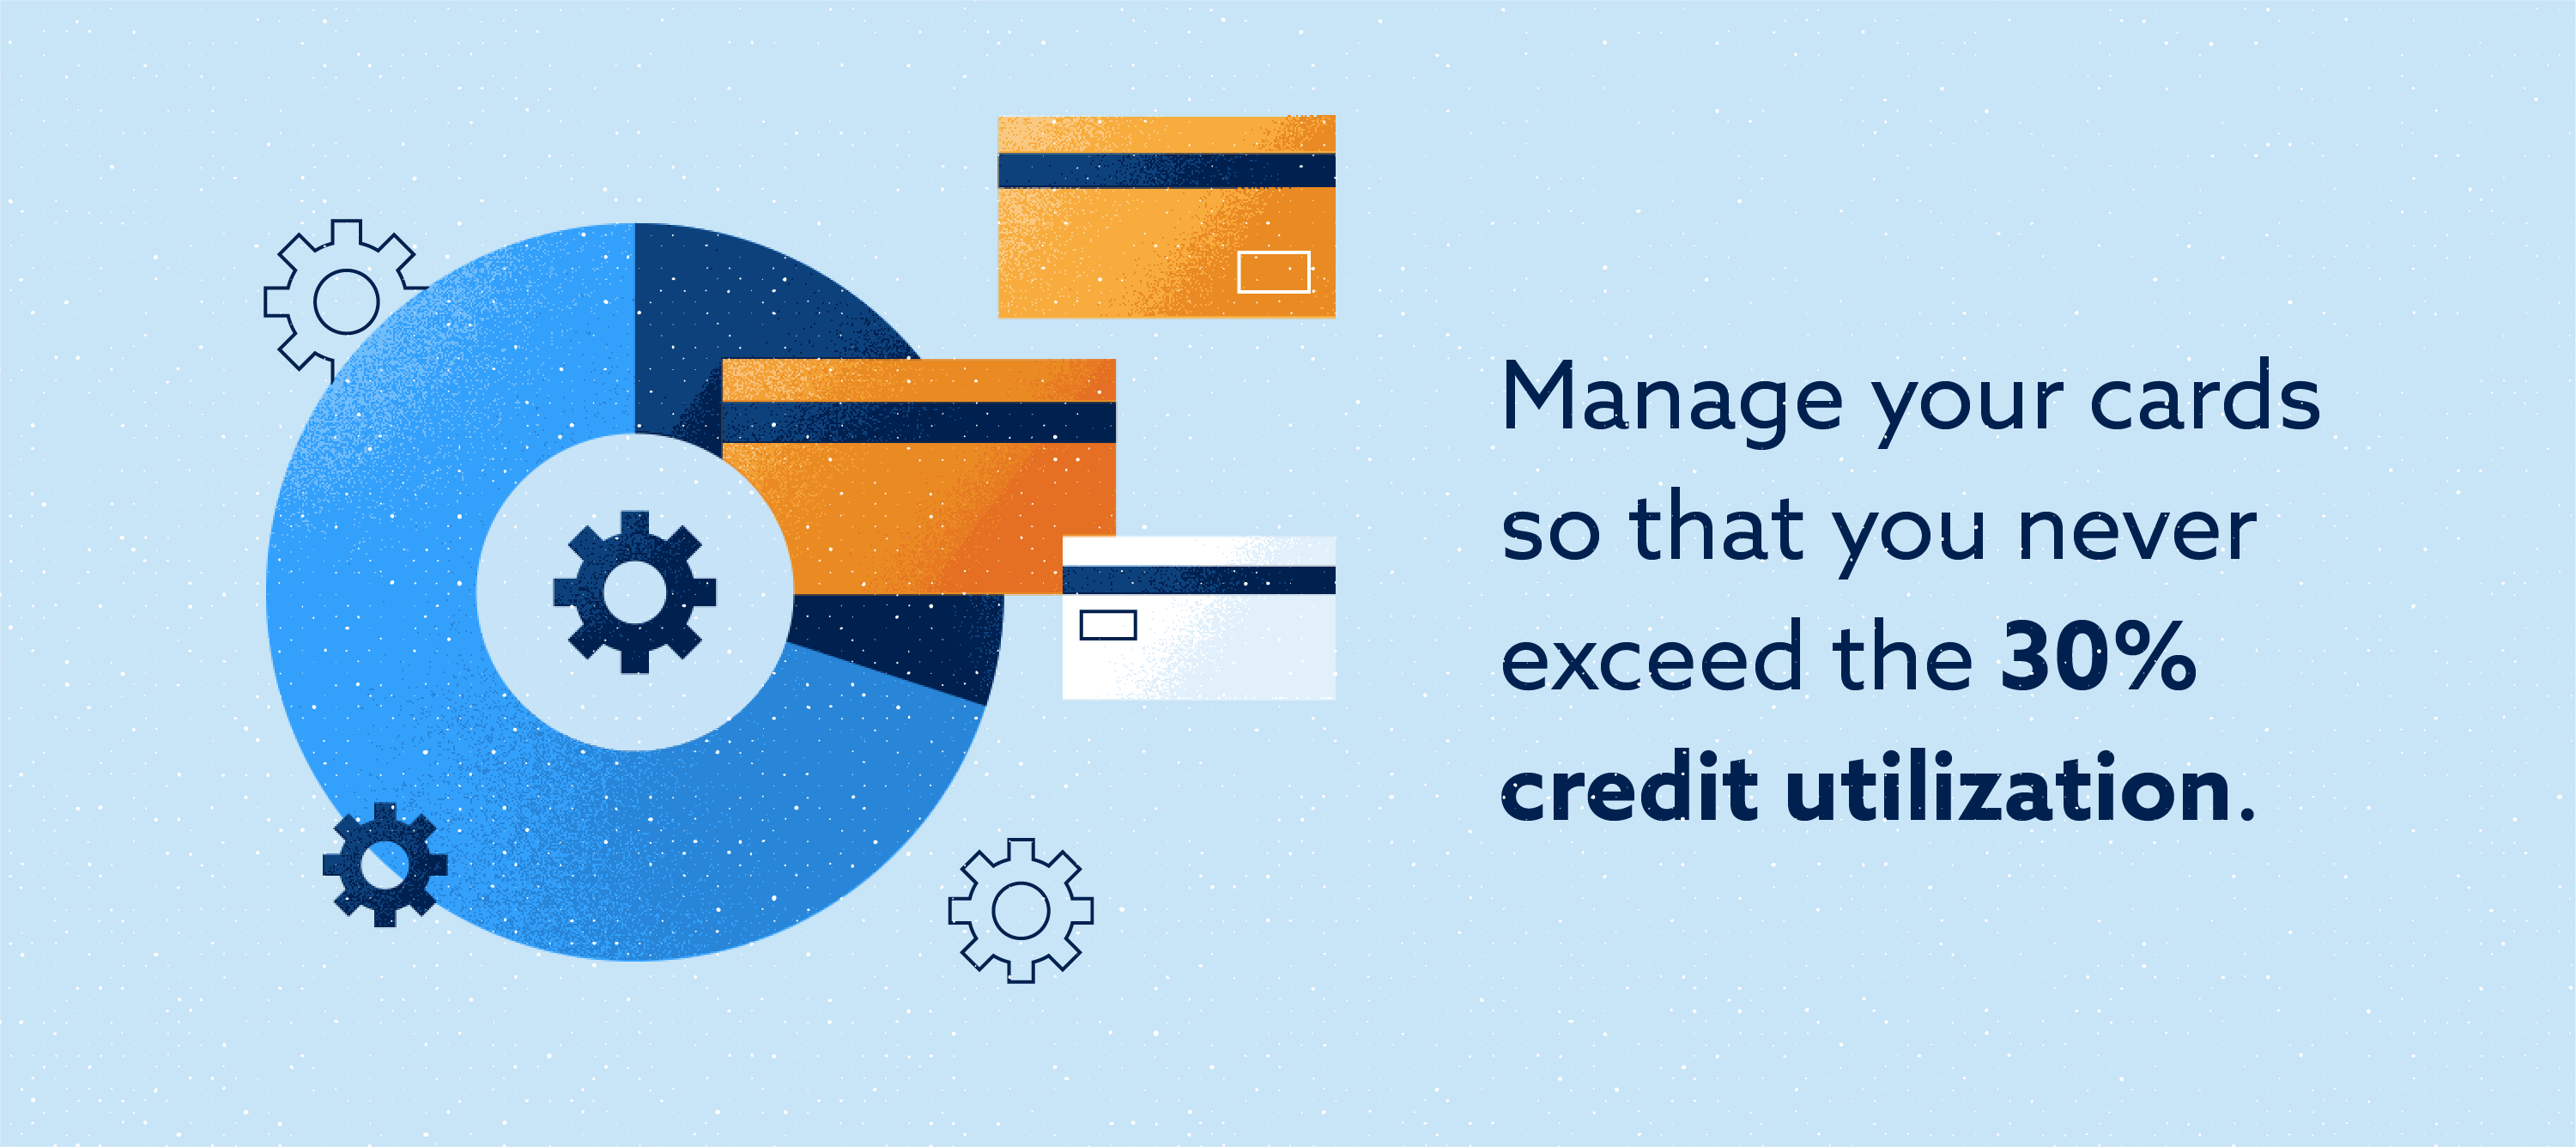 Credit utilization of 30% to help credit score Image